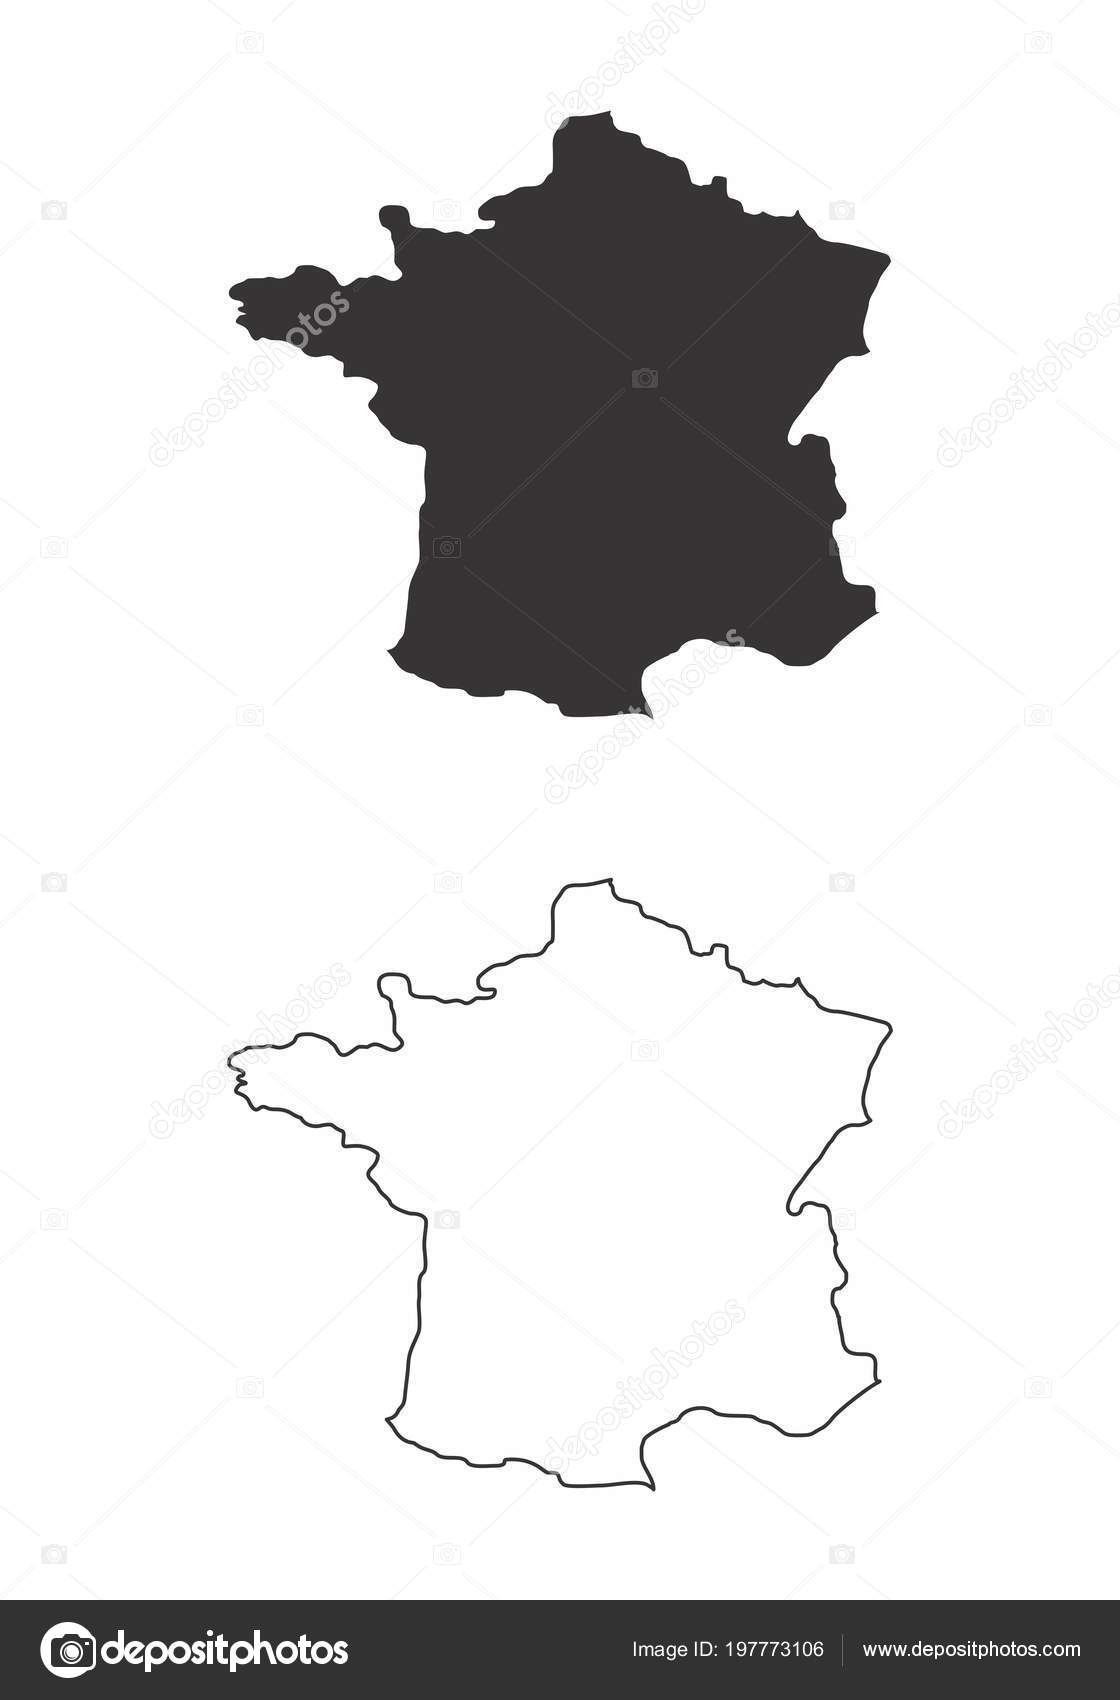 Image of: Black And White Map Of France Simplified Maps France Black White Outlines Stock Vector C Luisrftc 197773106